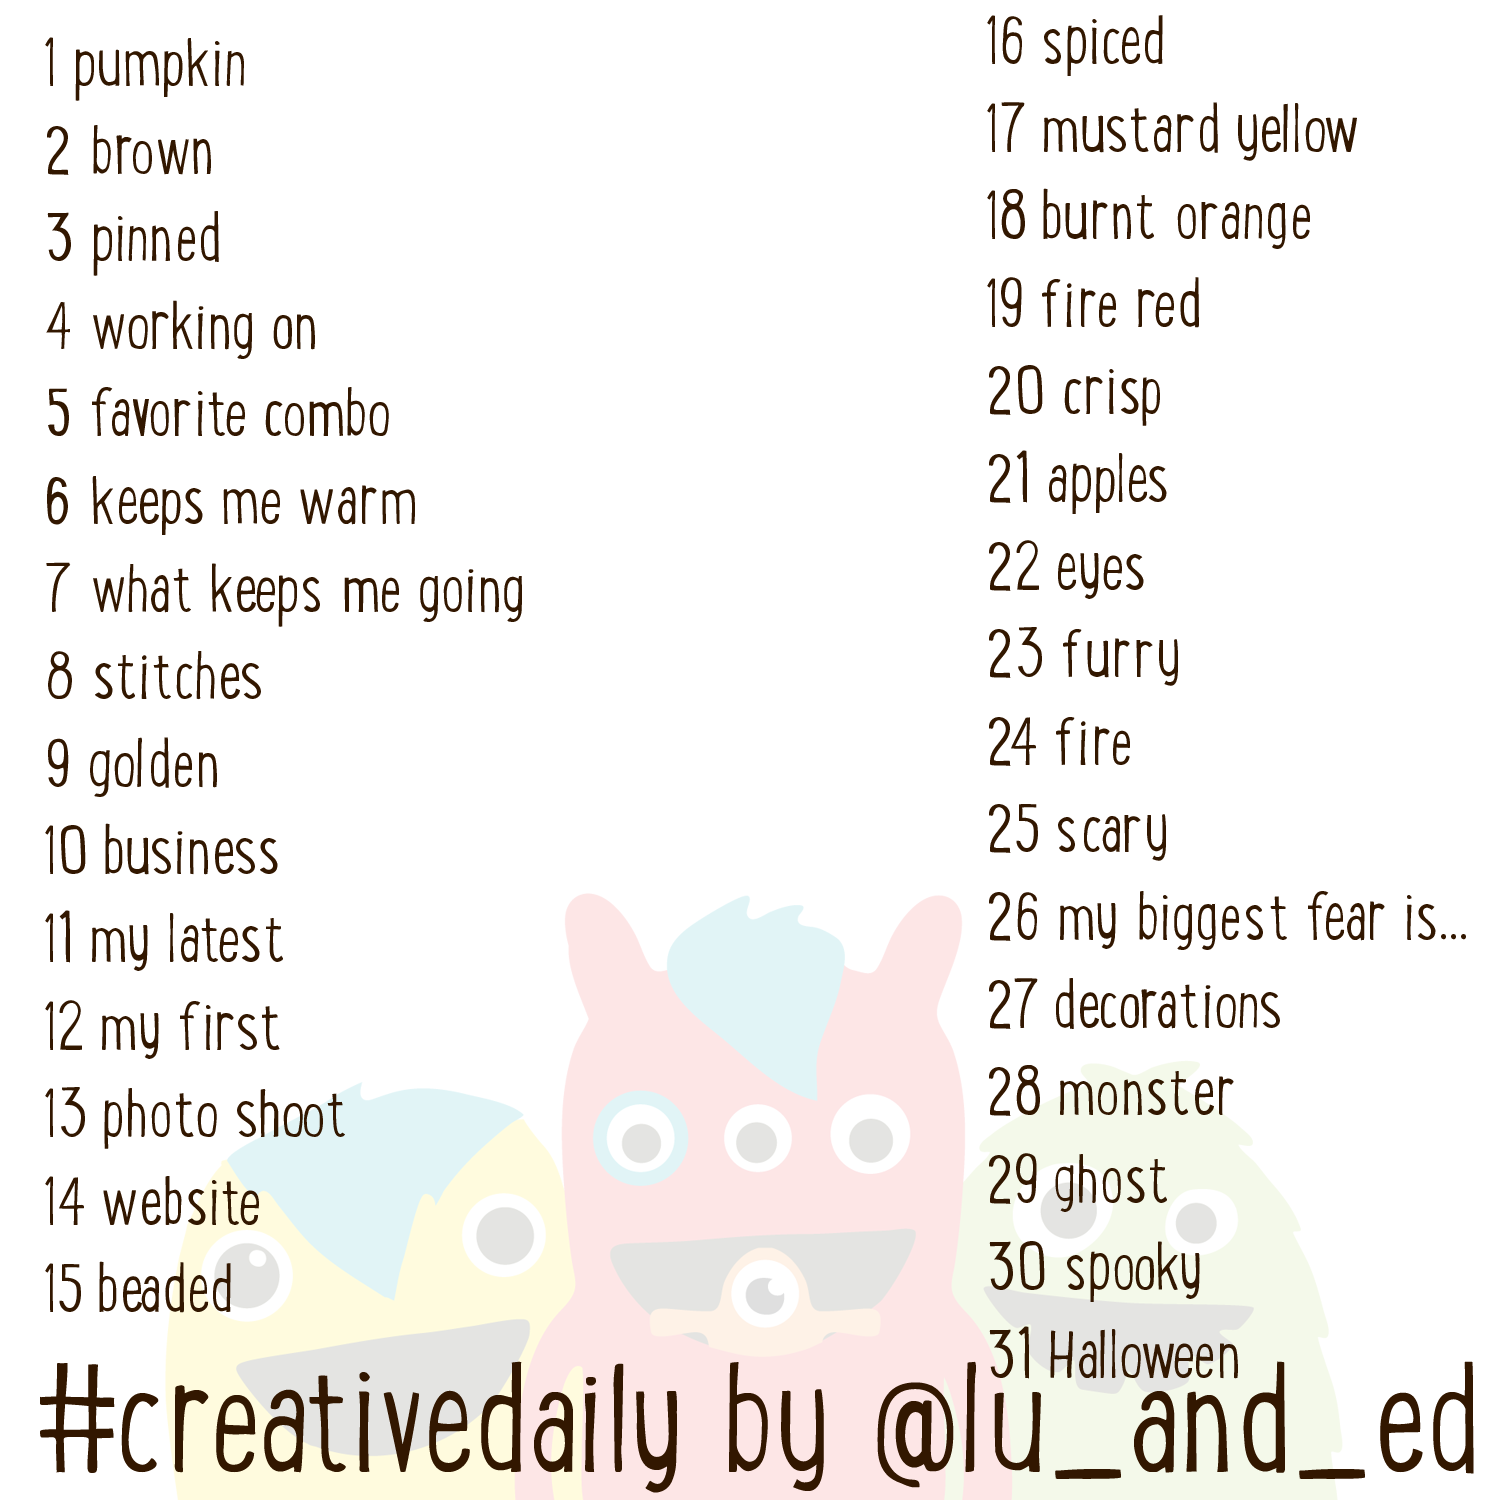 http://luanded.blogspot.com/2014/10/october-creative-daily-prompts.html